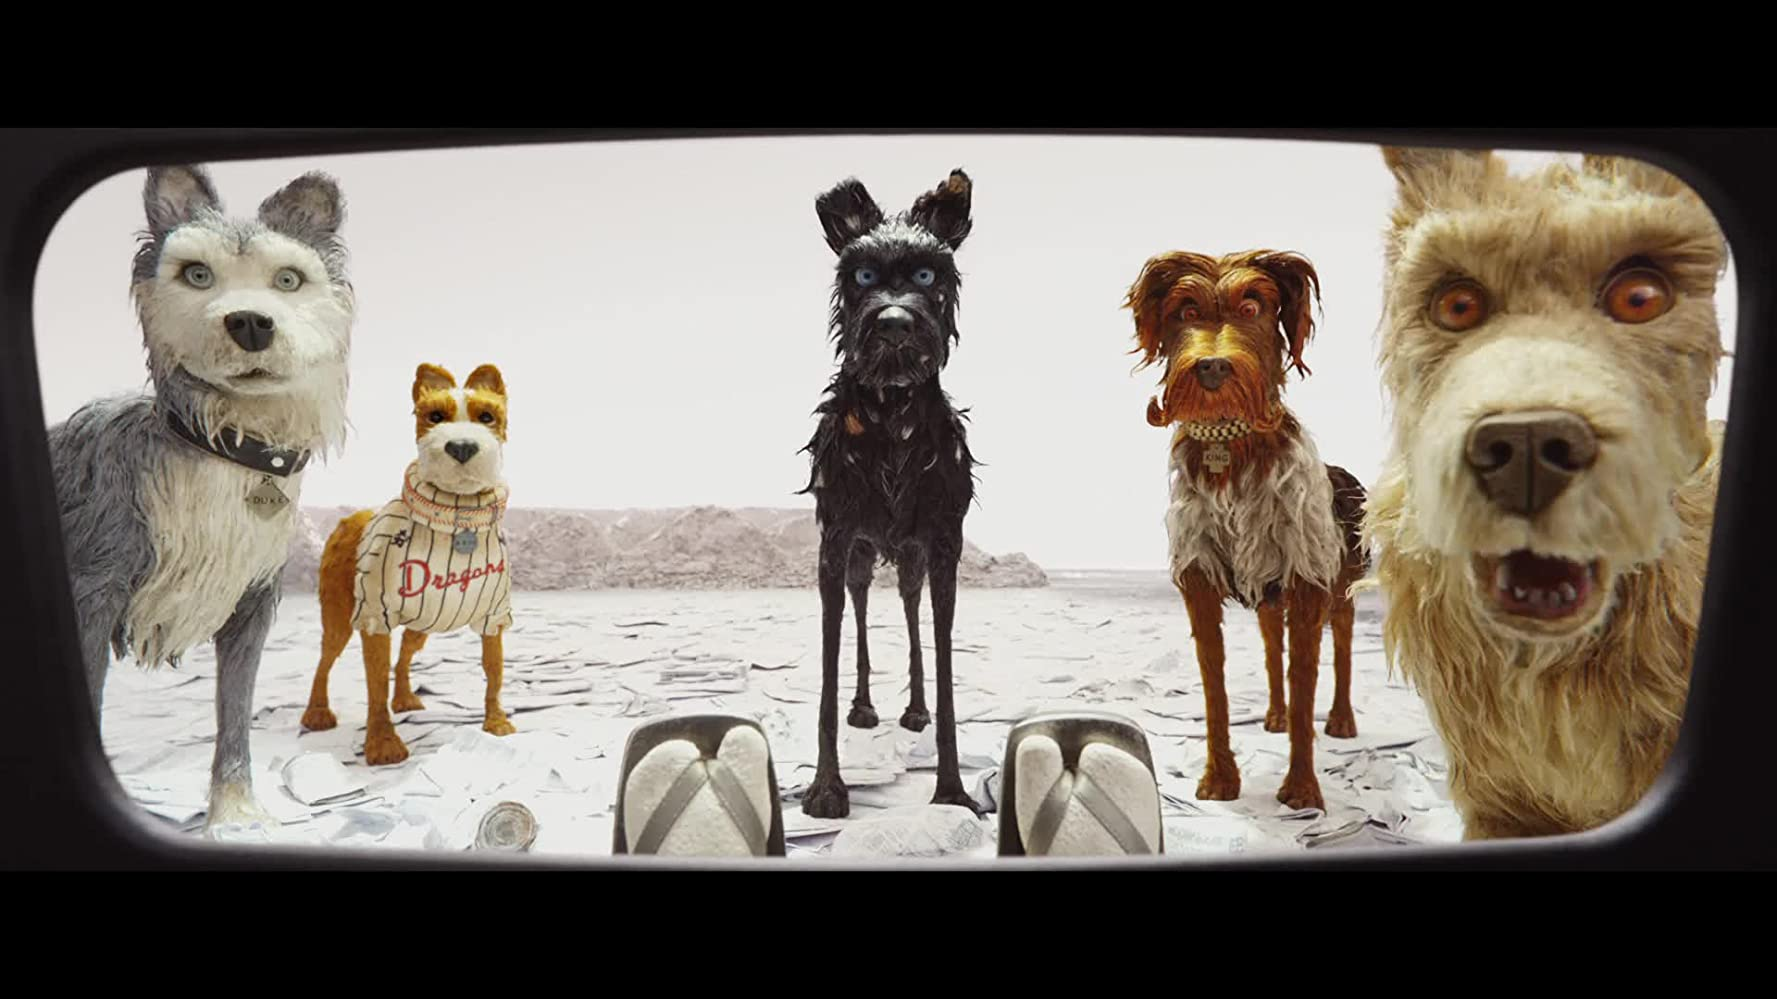 Jeff Goldblum, Bill Murray, Bob Balaban, Edward Norton, and Bryan Cranston in Isle of Dogs (2018)